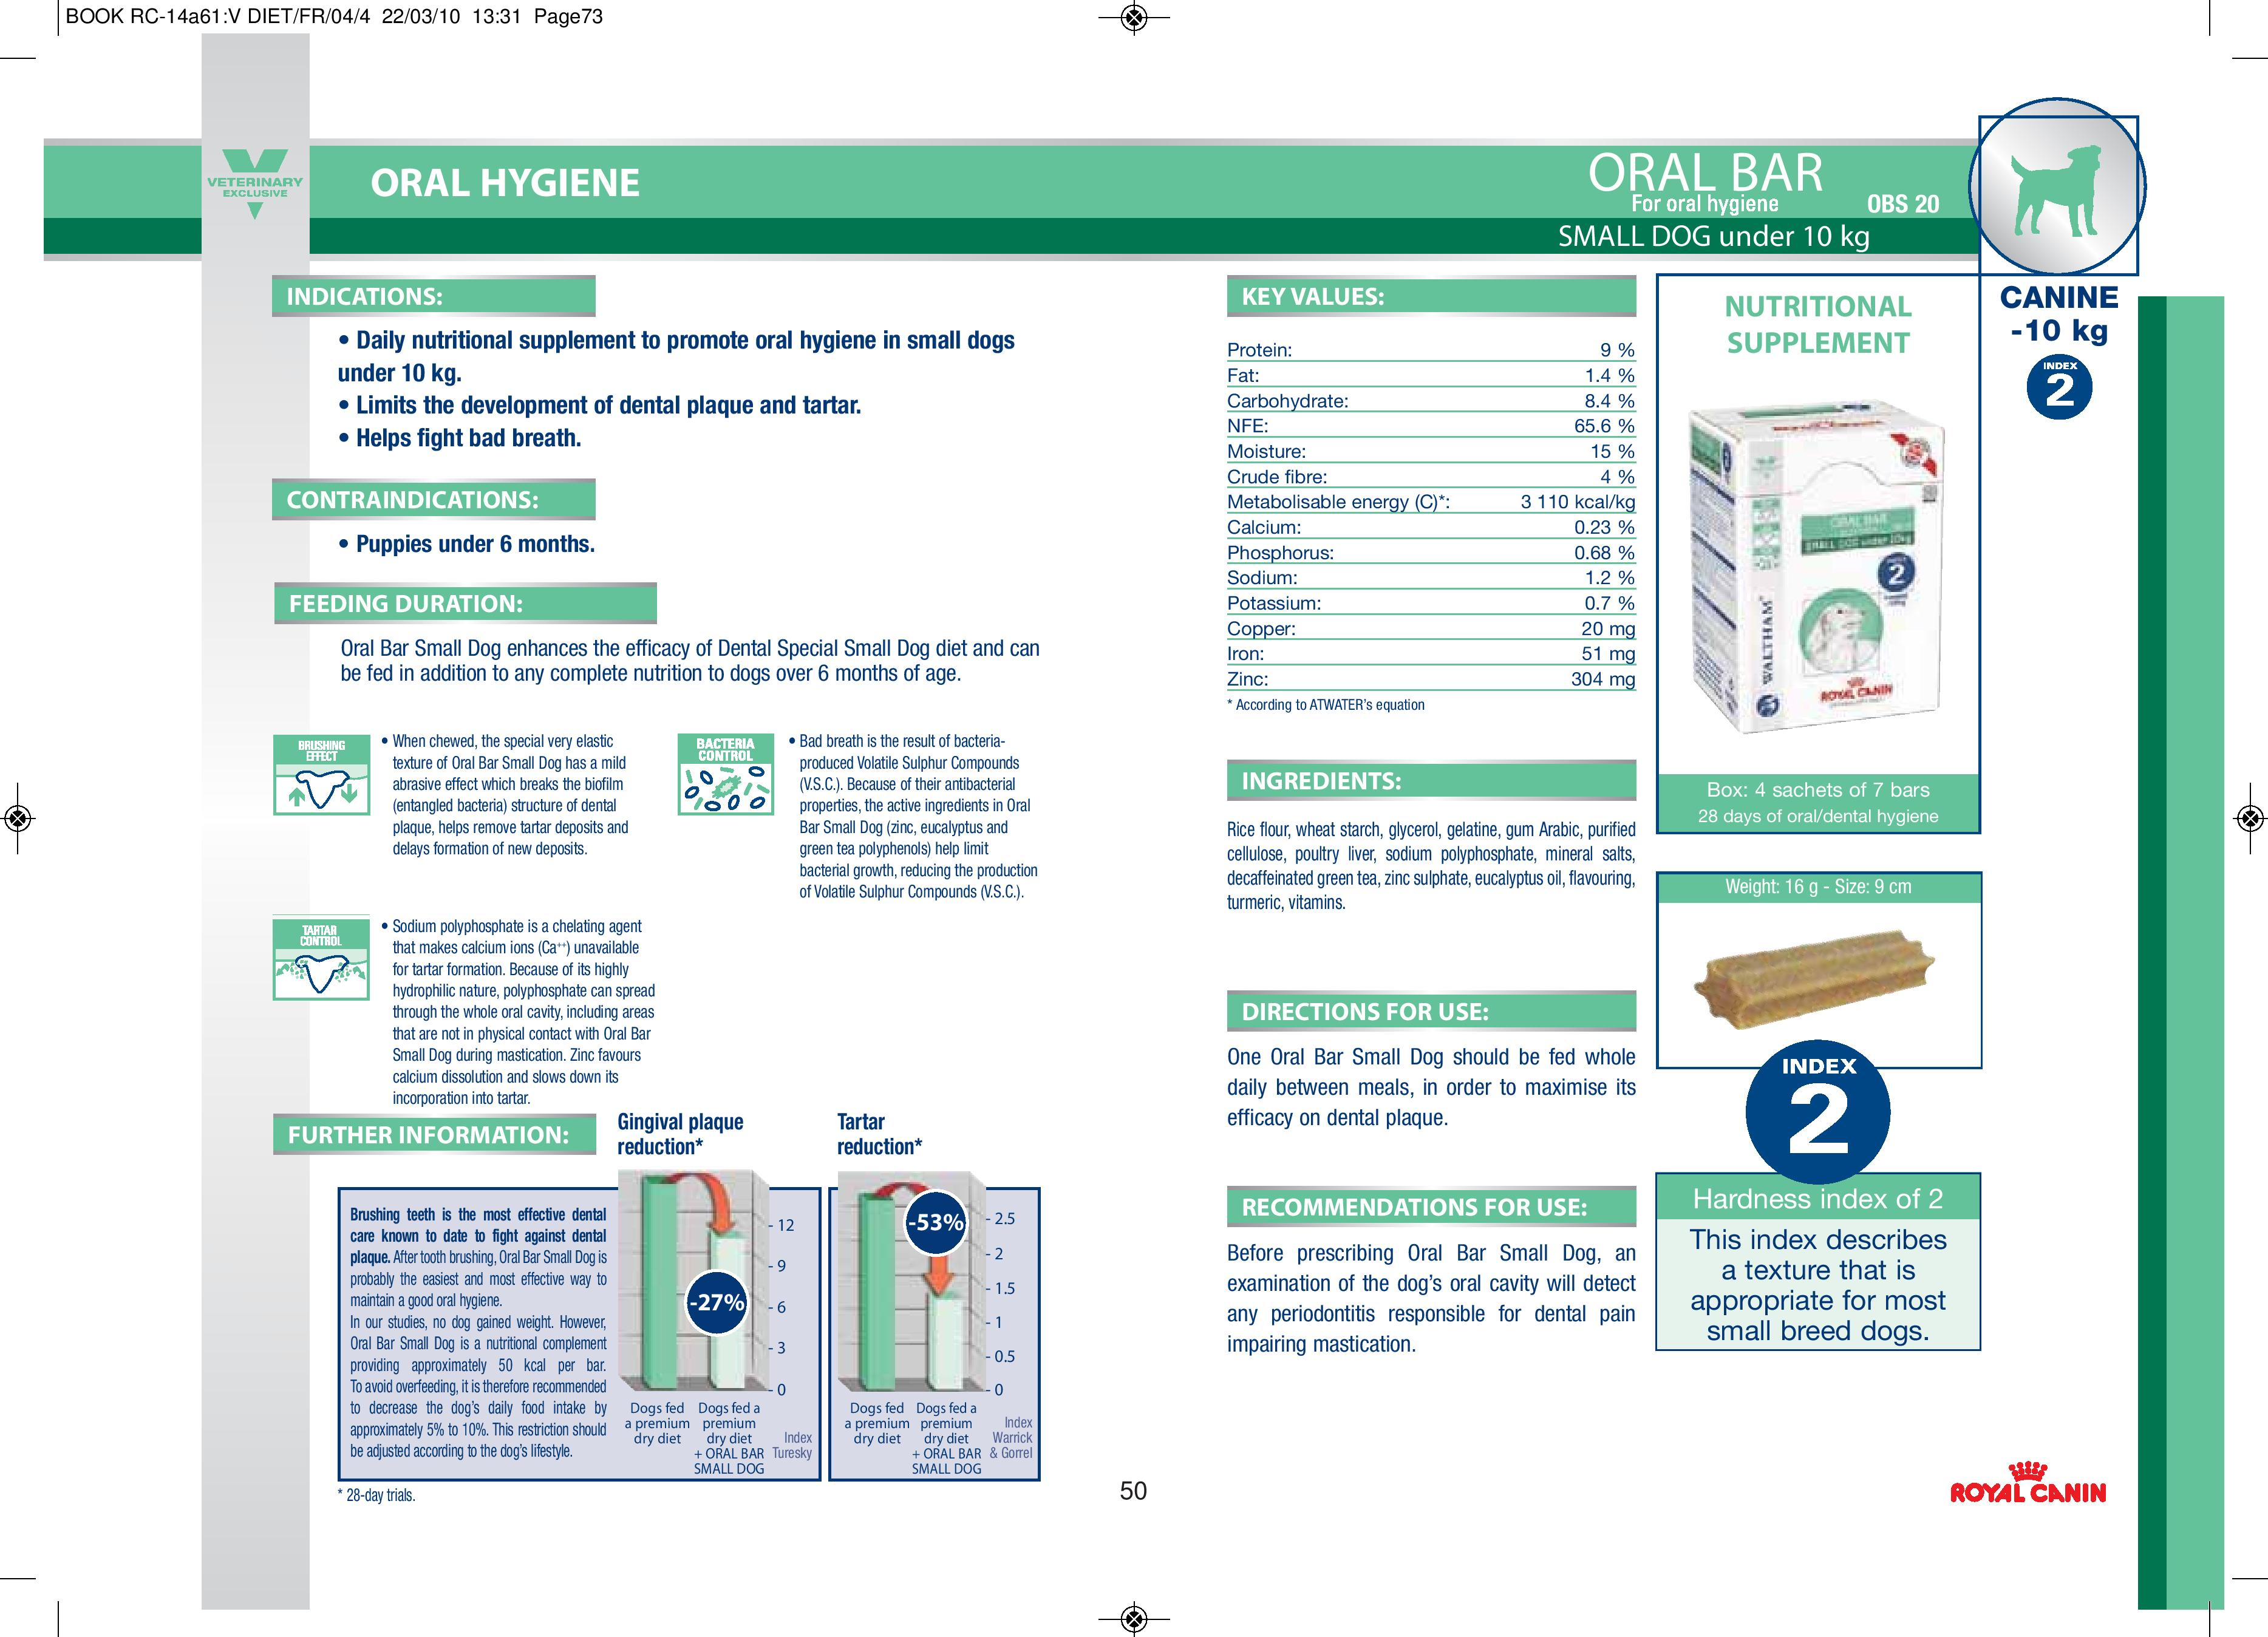 Emirates Animals Export Product Book 2010 BD-page-001 (52)